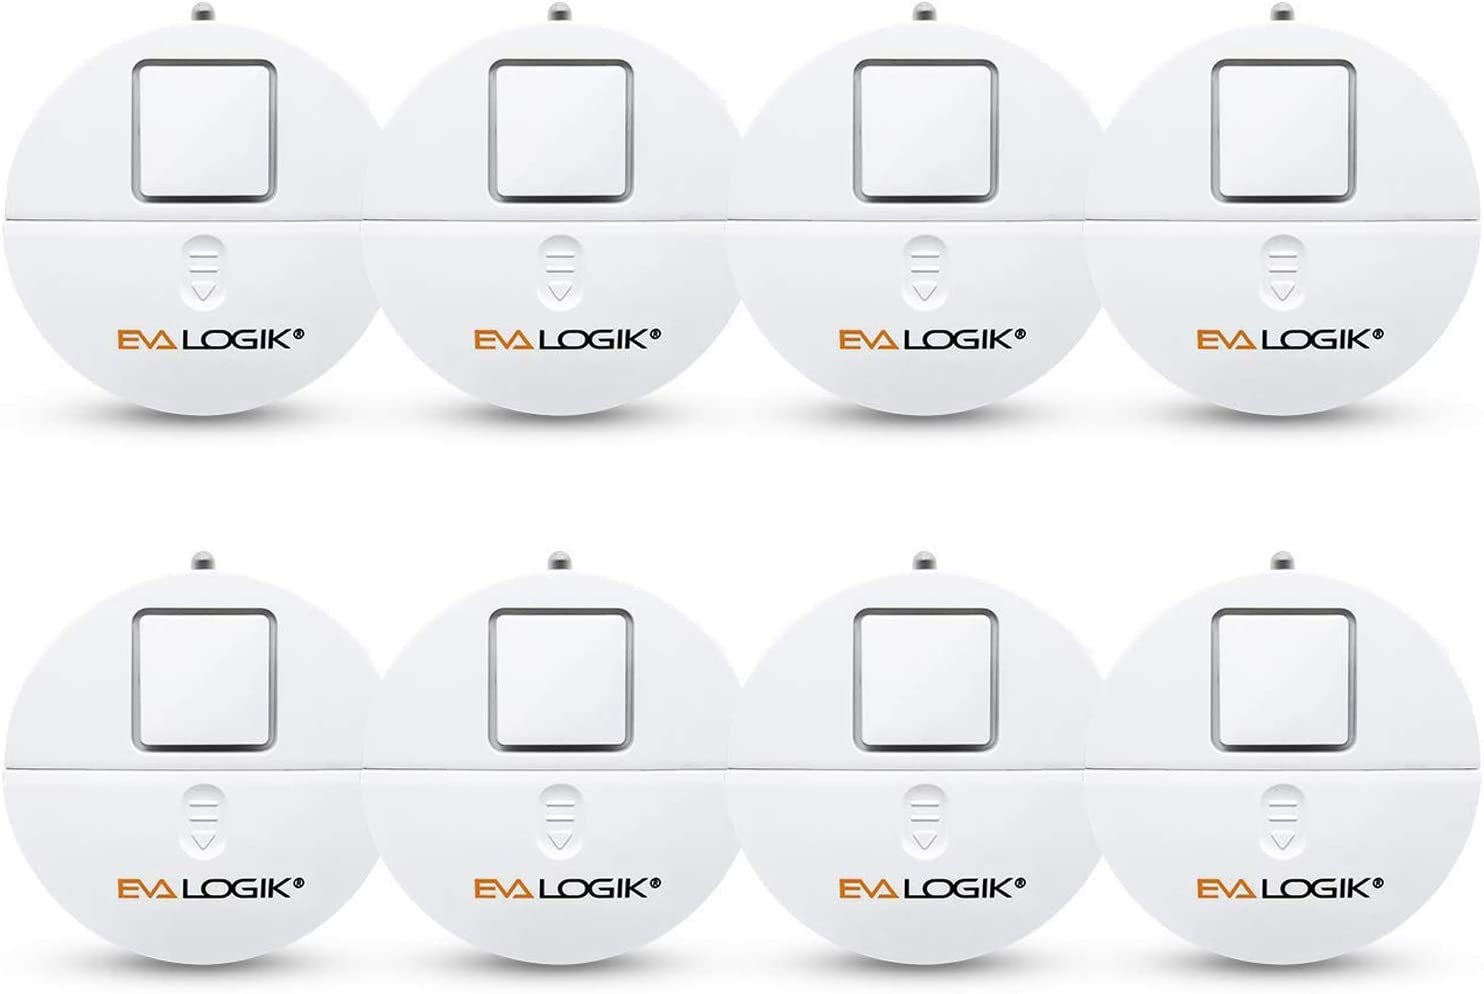 EVA LOGIK Modern Ultra-Thin Window Alarm